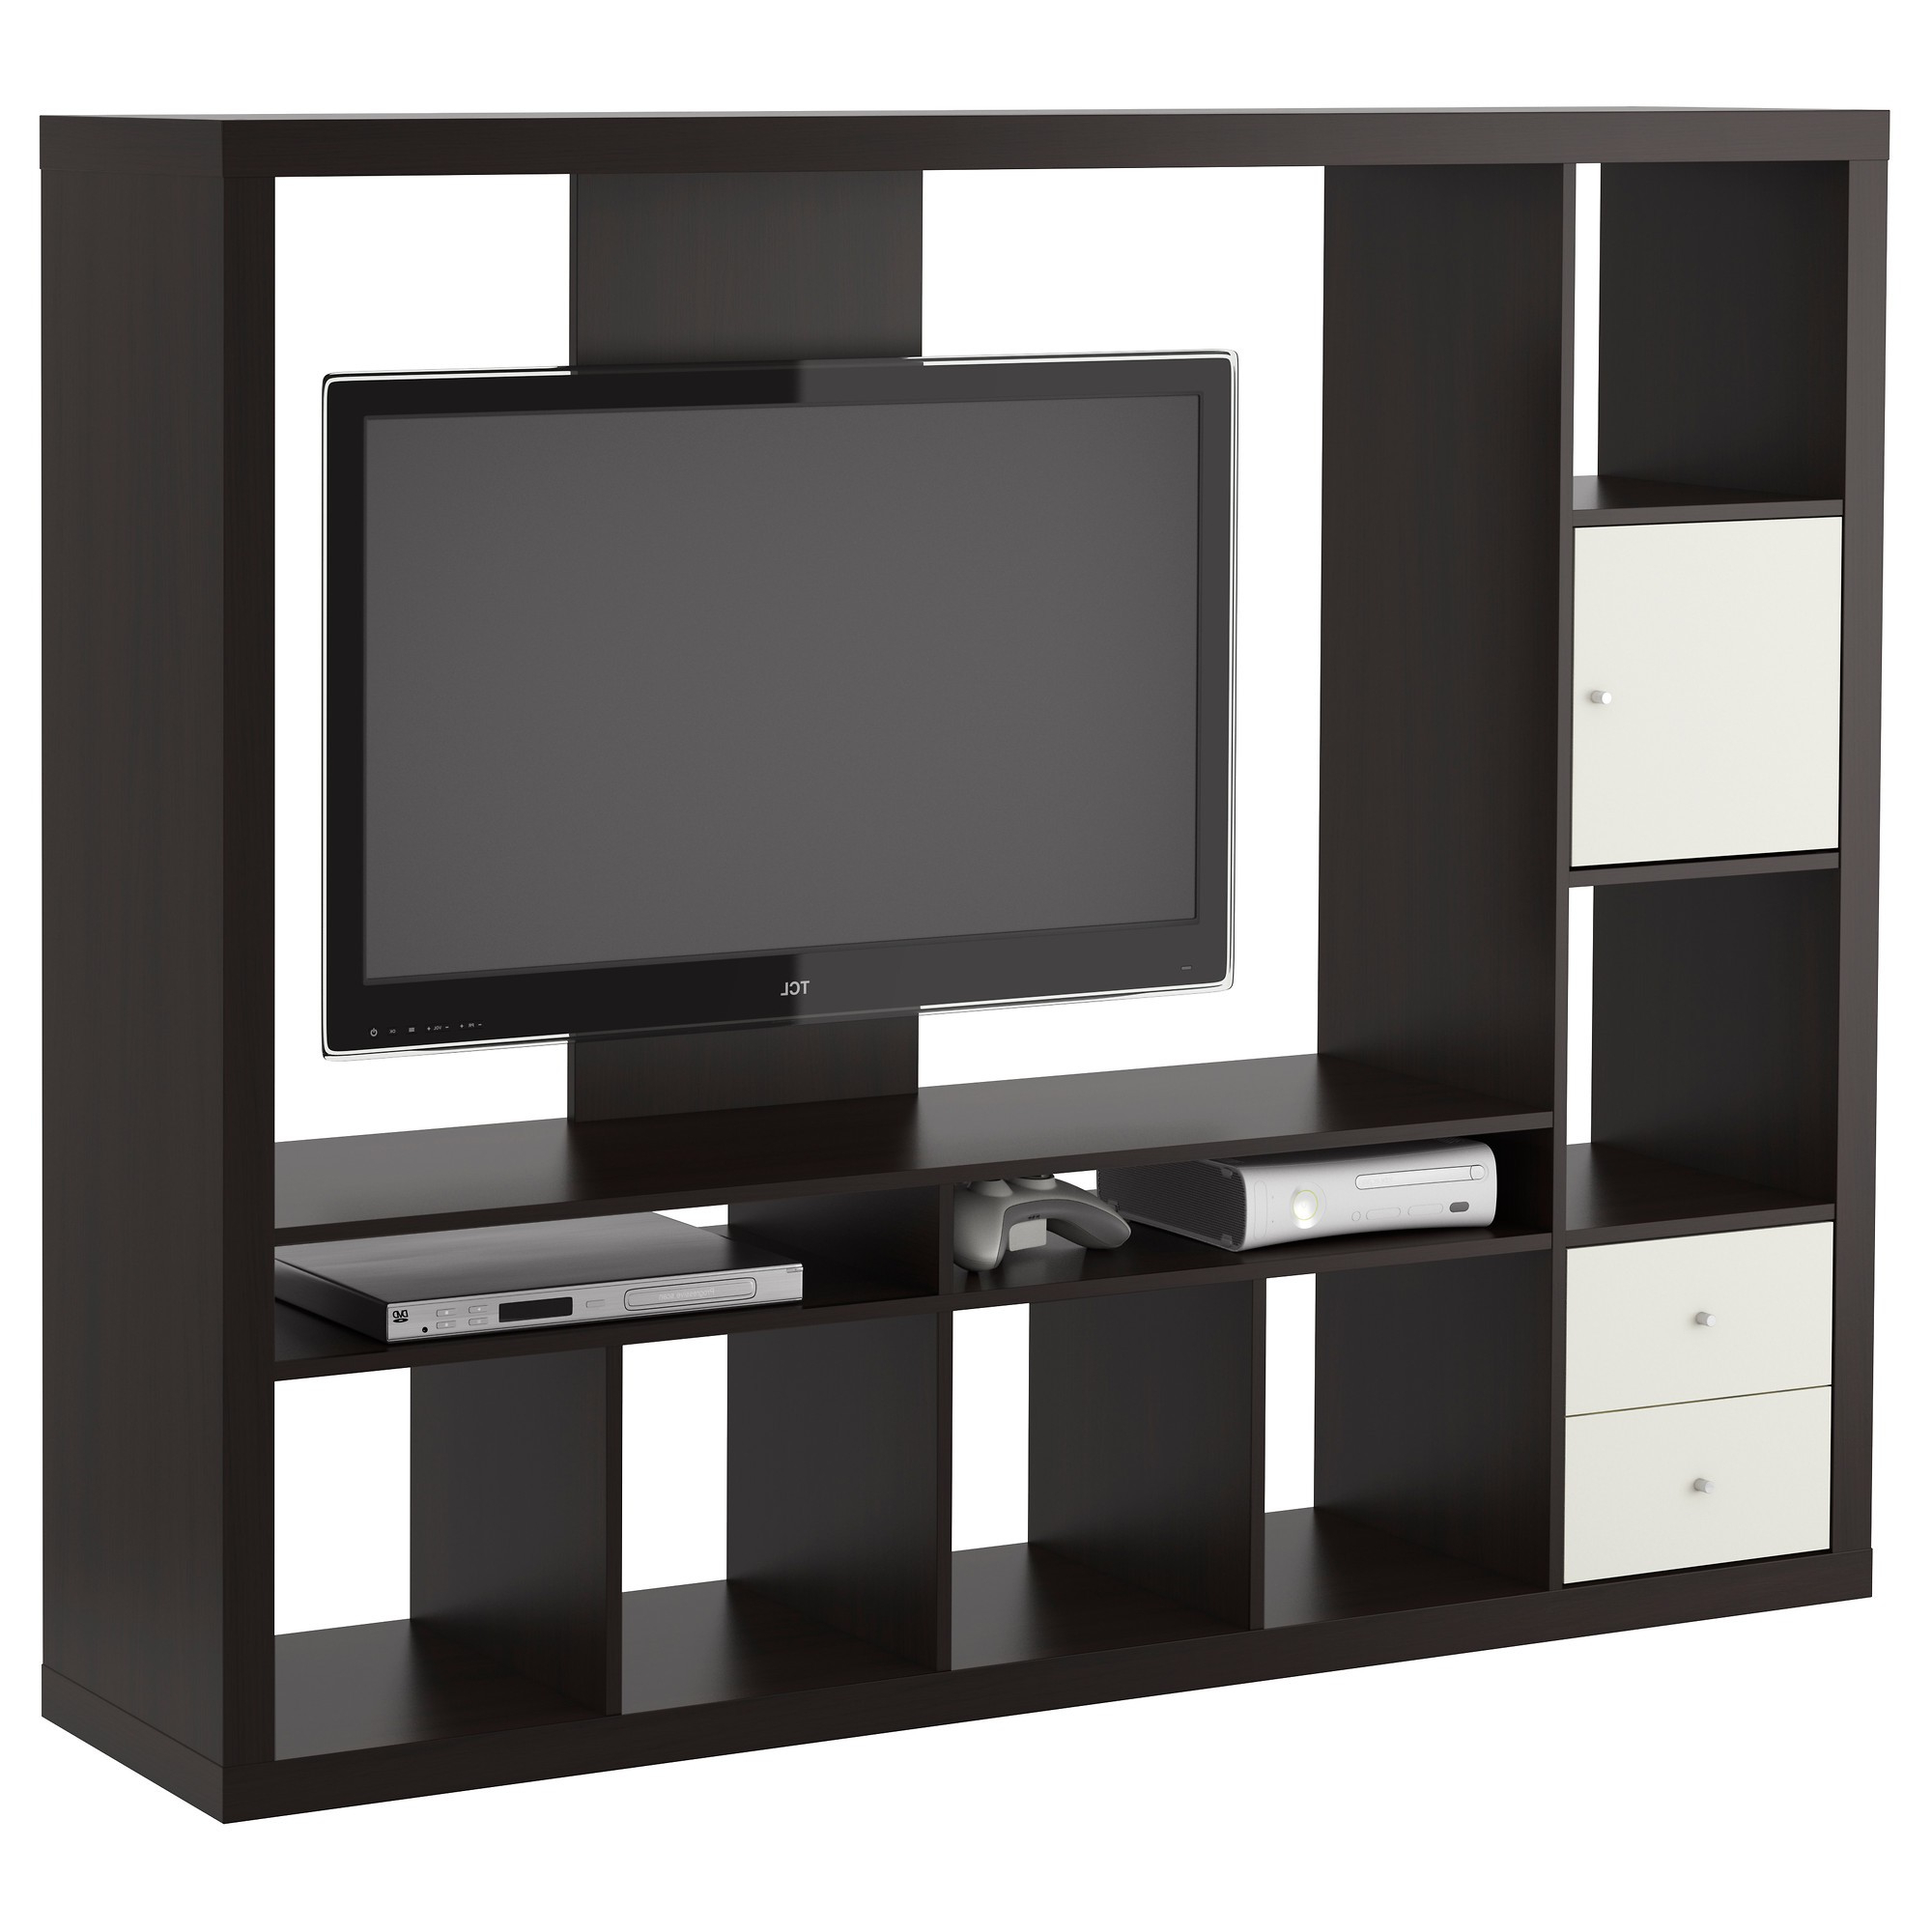 Black Tv Cabinets With Doors For Current Cabinet Refacing Ideas : Unique Tv Cabinets With Doors For Flat (View 4 of 20)